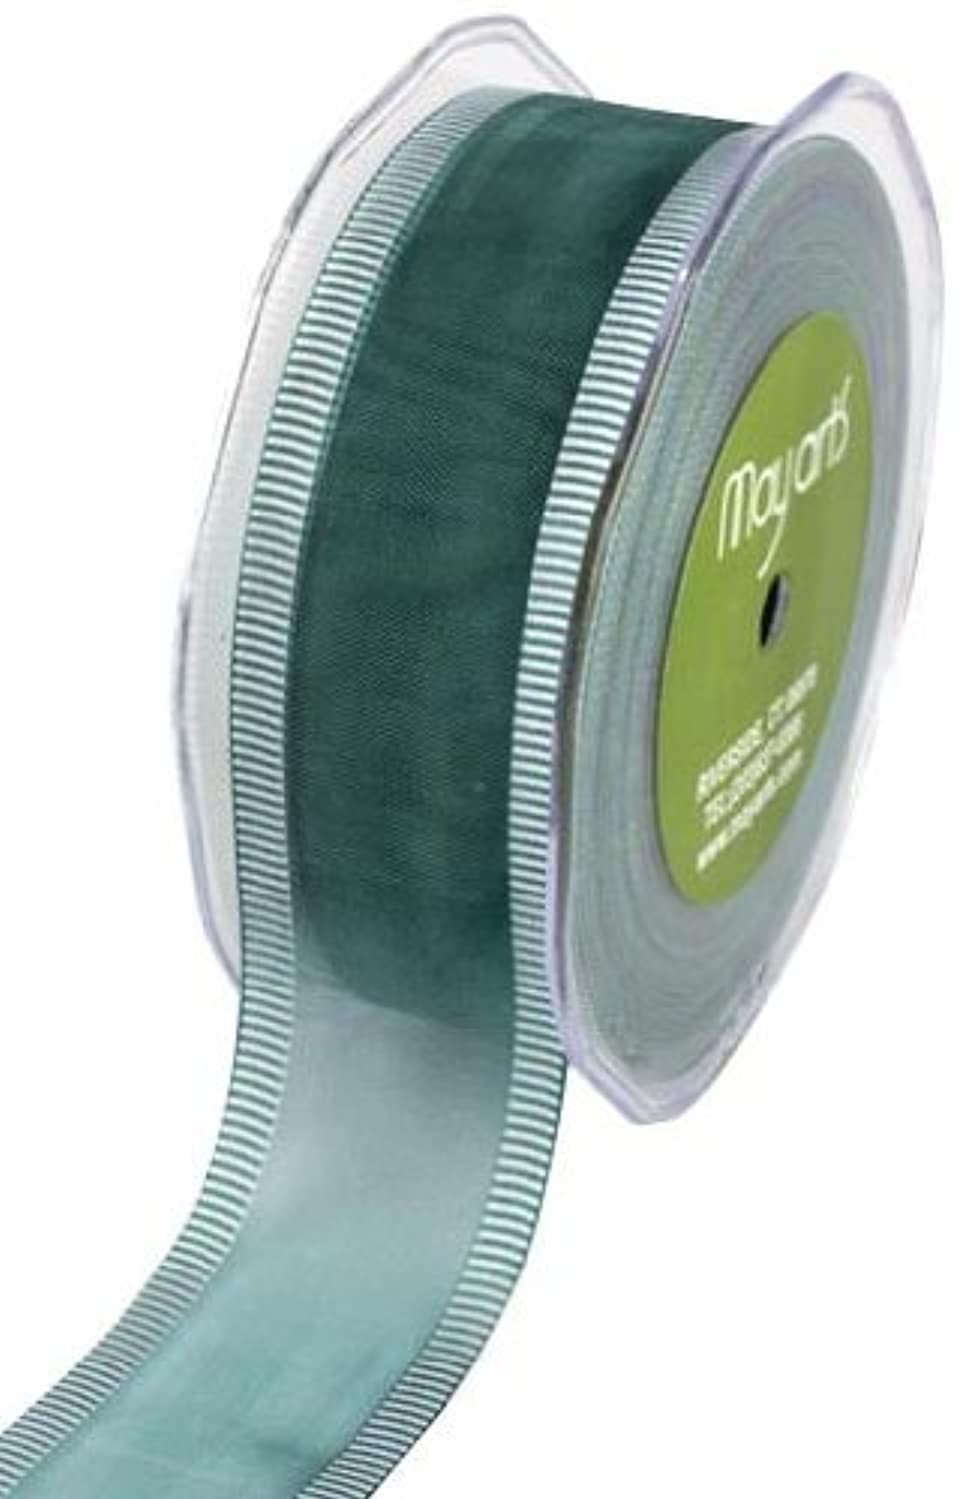 May Arts 1-1/2-Inch Wide Ribbon, Teal Sheer with White Striped Edge